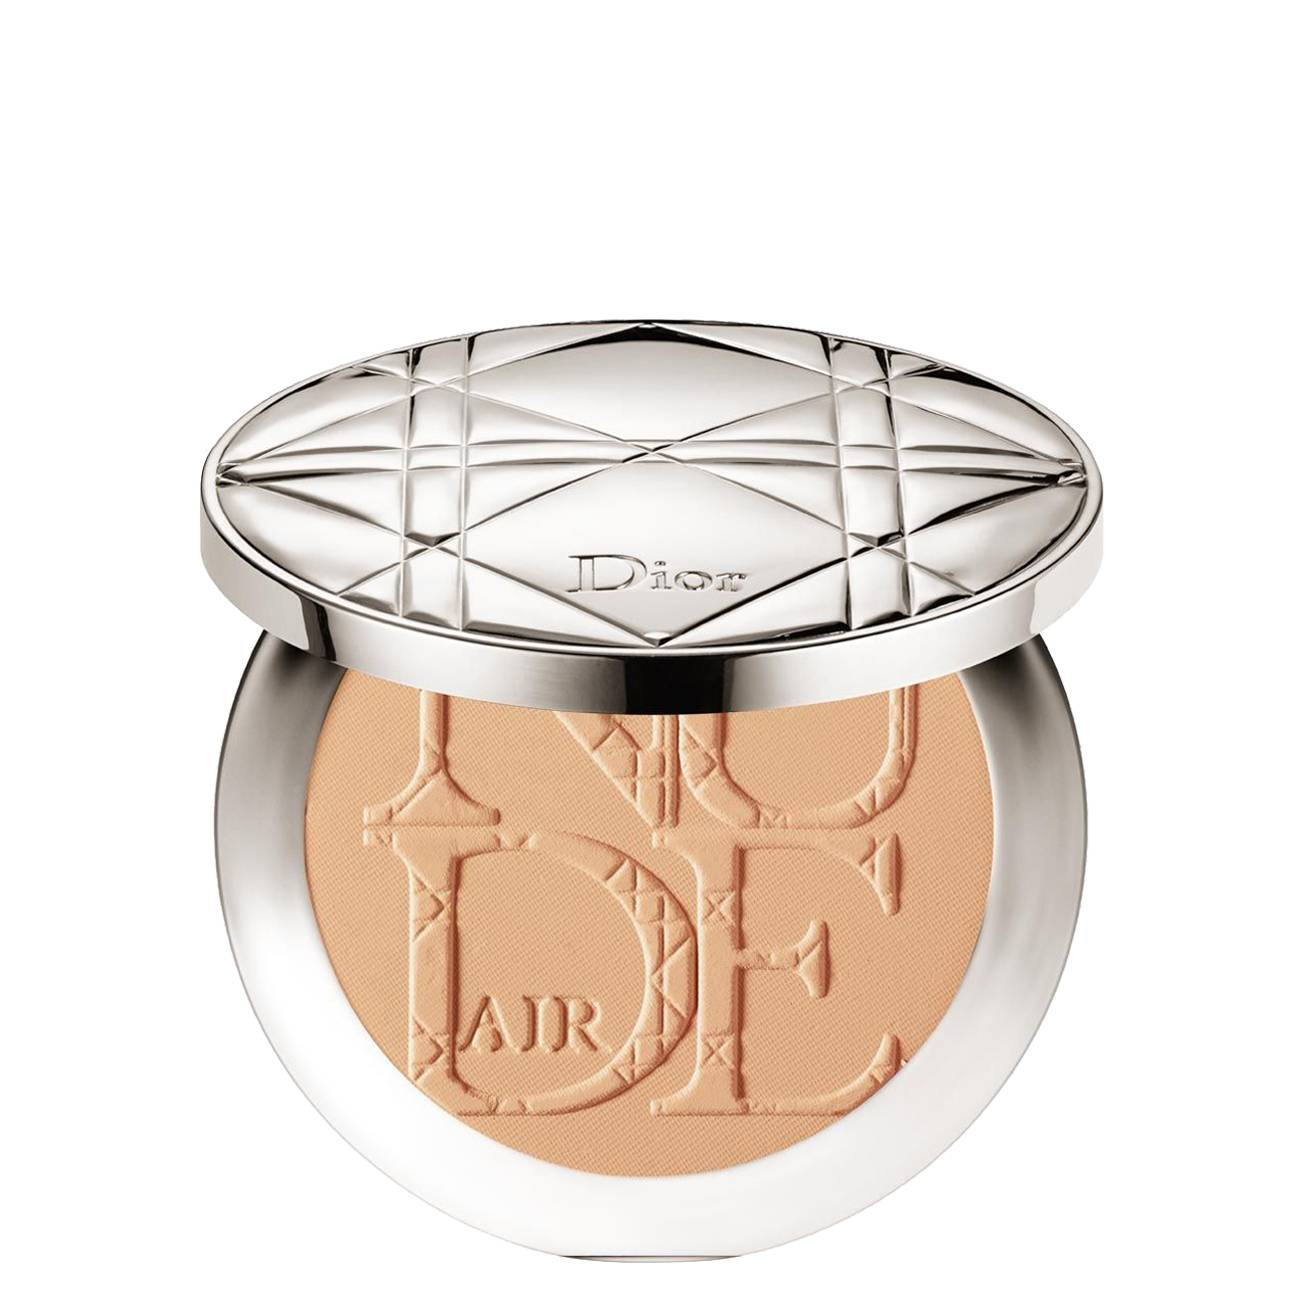 Diorskin Nude Air Tan 030-Medium Beige